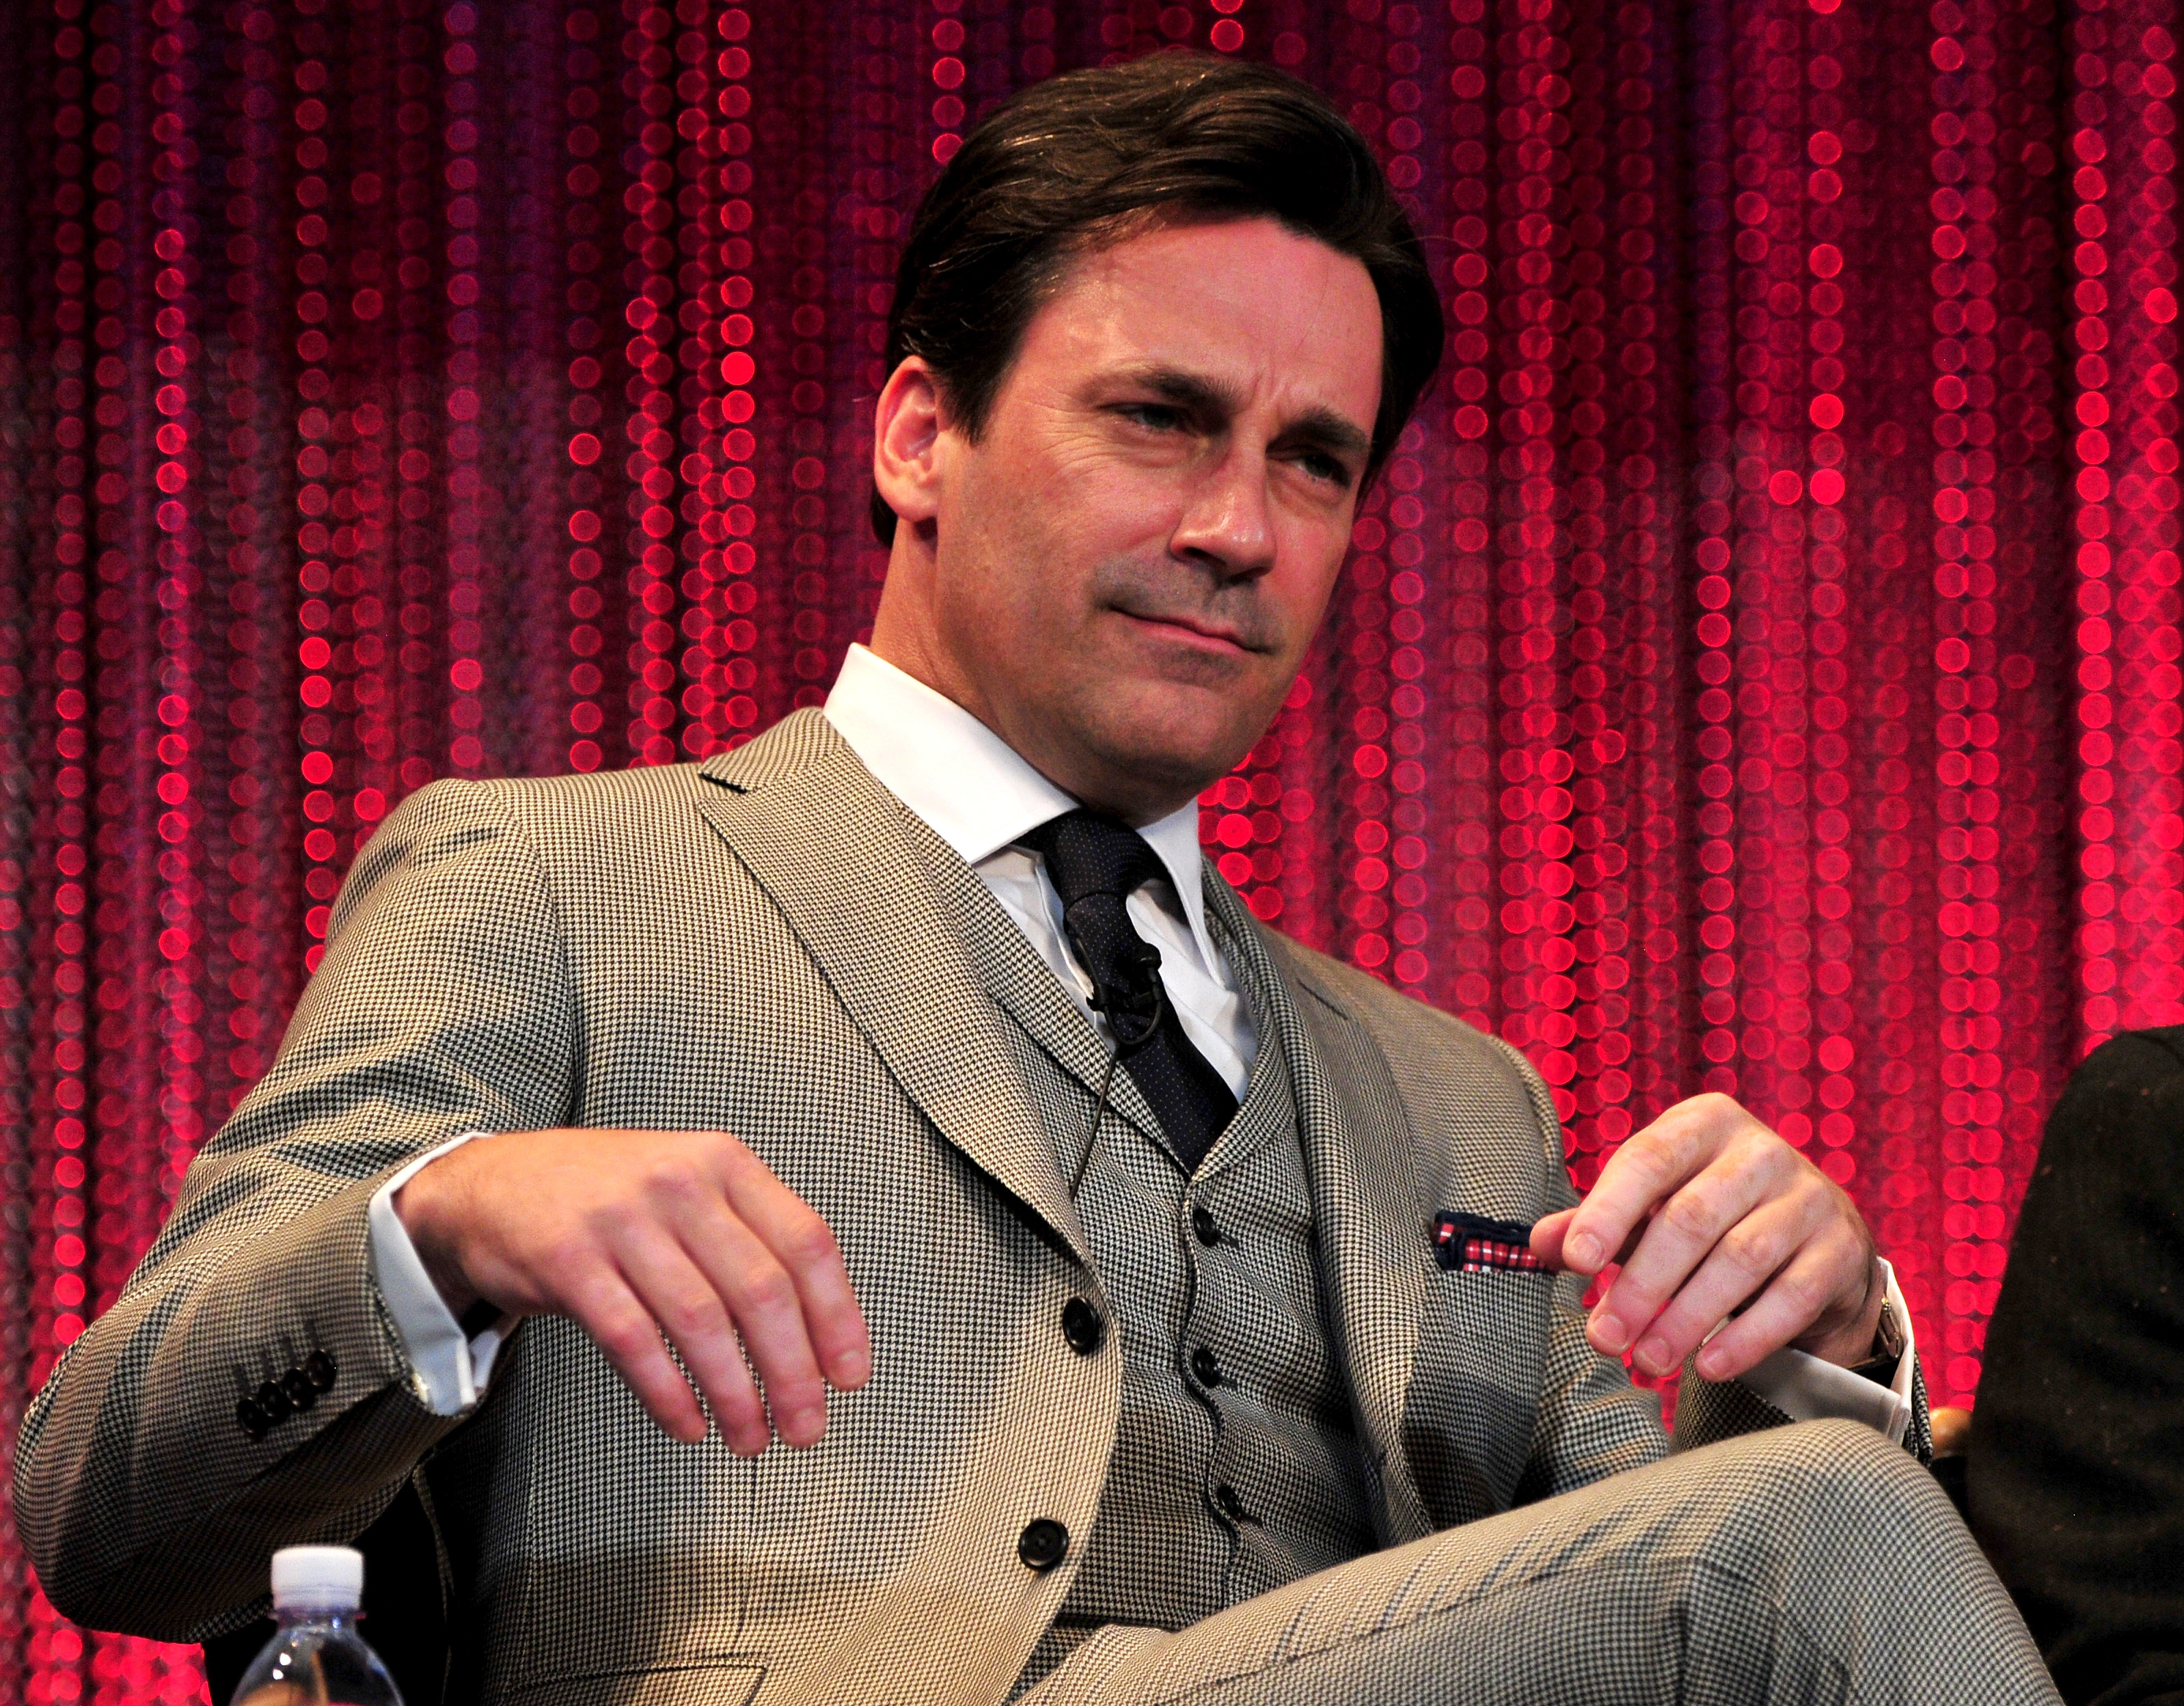 """HOLLYWOOD, CA - MARCH 21:  Actor Jon Hamm on stage at The Paley Center For Media's PaleyFest 2014 Honoring """"Mad Men"""" at Dolby Theatre on March 21, 2014 in Hollywood, California.  (Photo by Frazer Harrison/Getty Images)"""